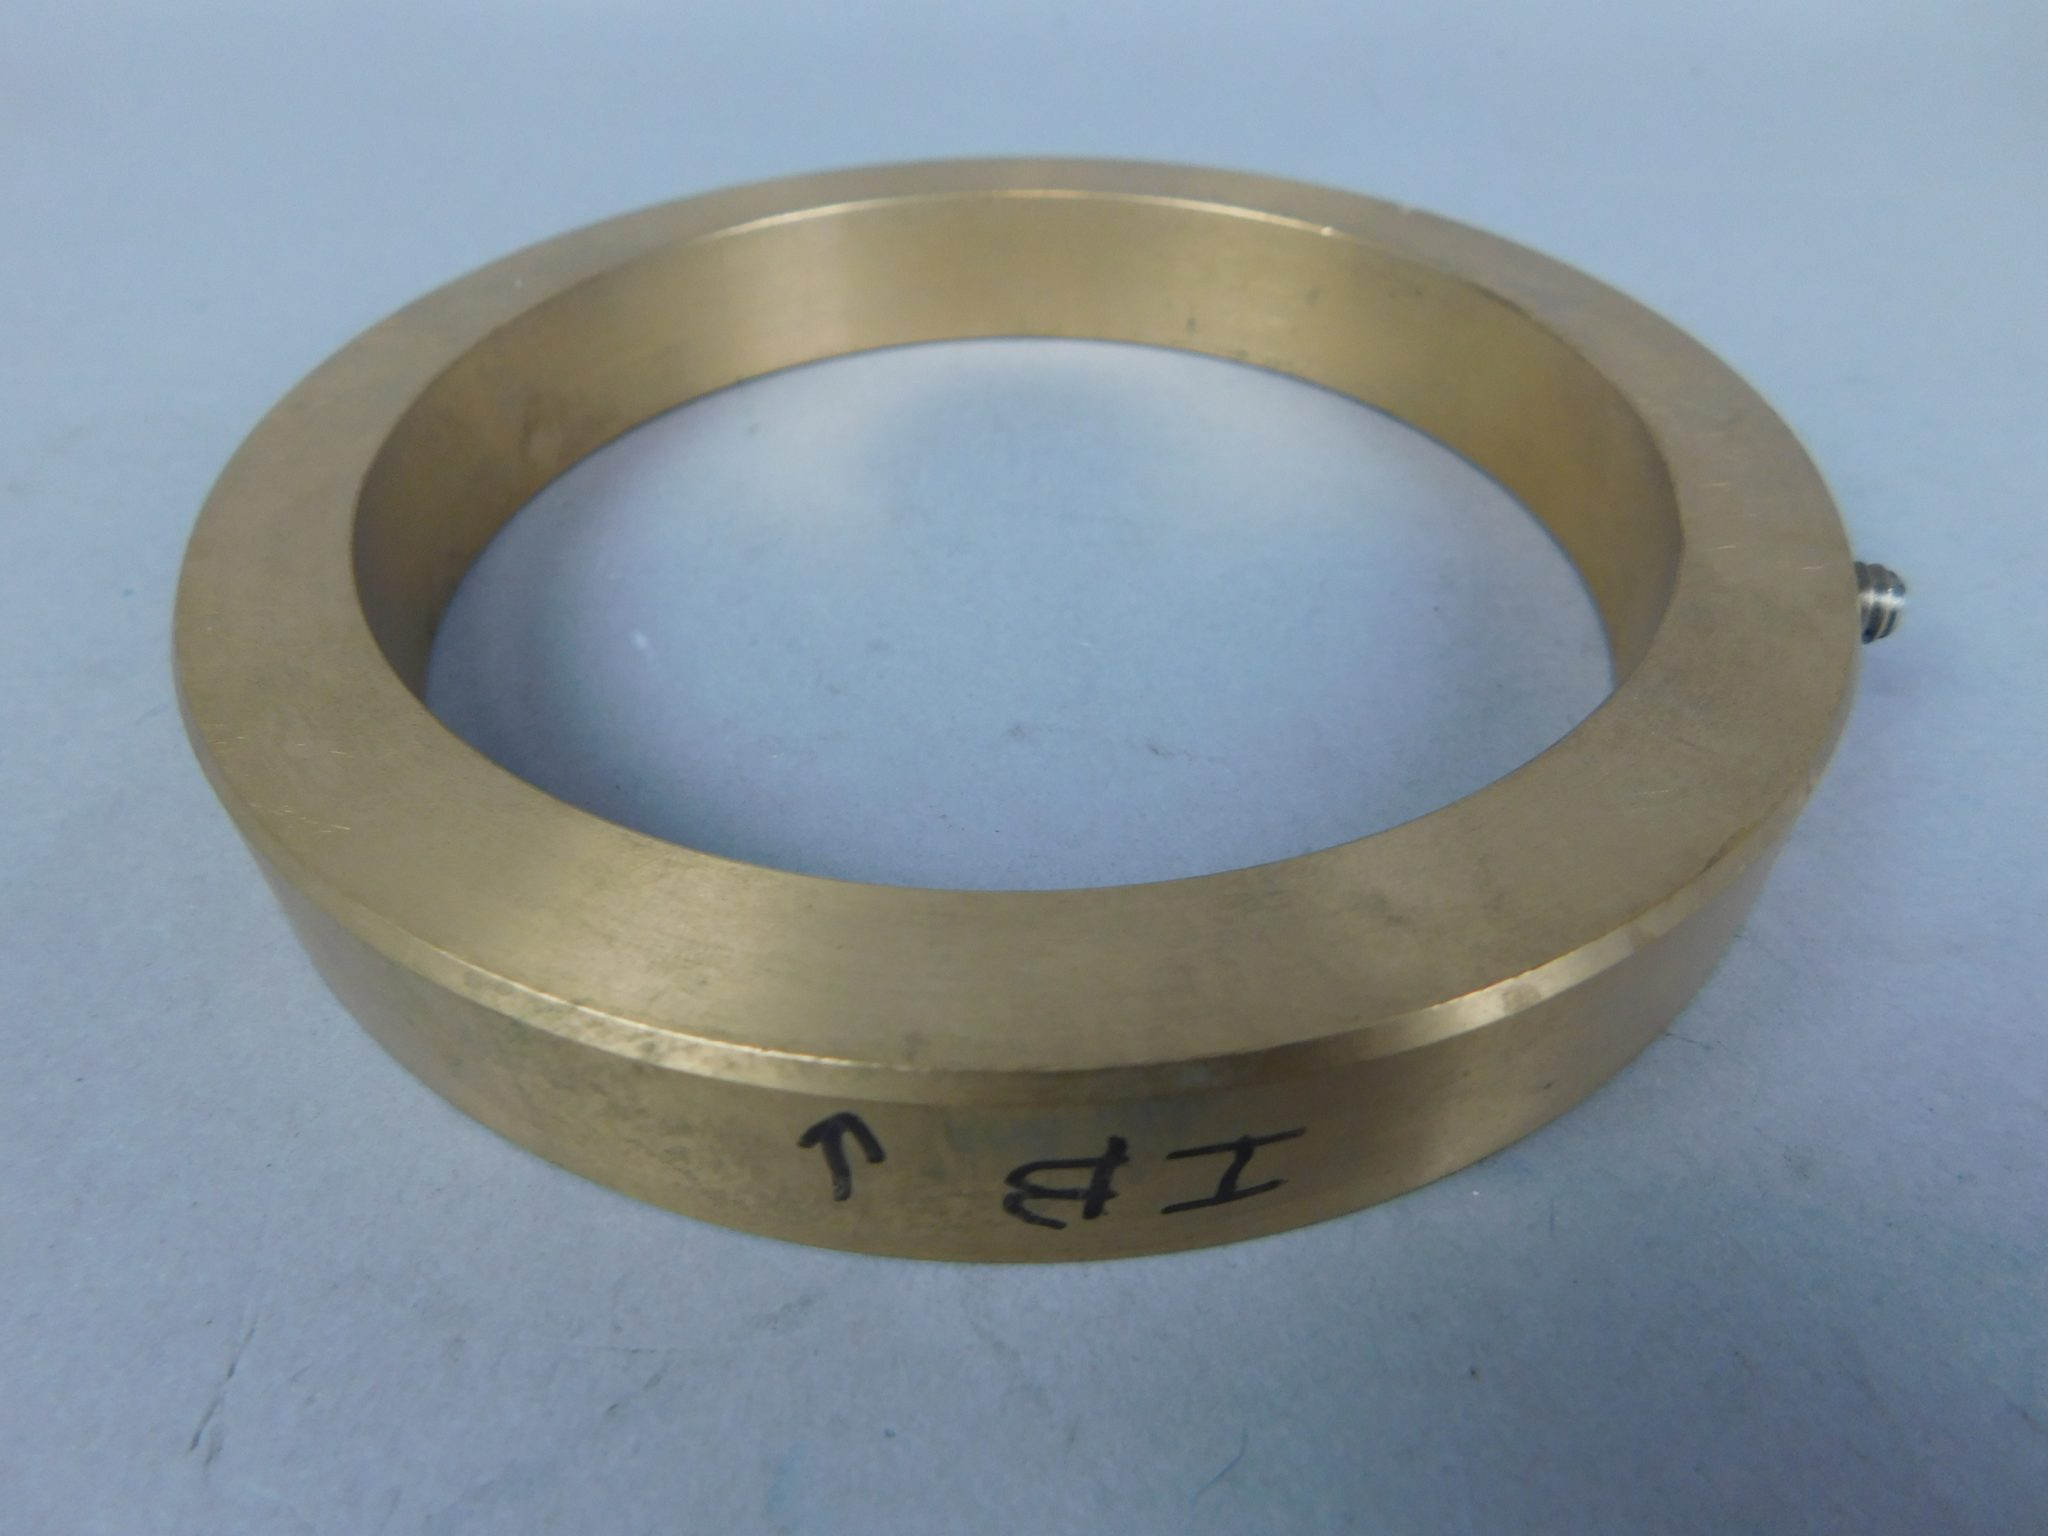 Worthington 52648-30 / Thelco 41537-6A Casing Ring Assbly, 2LLR-9 & 3LR-9  Pumps